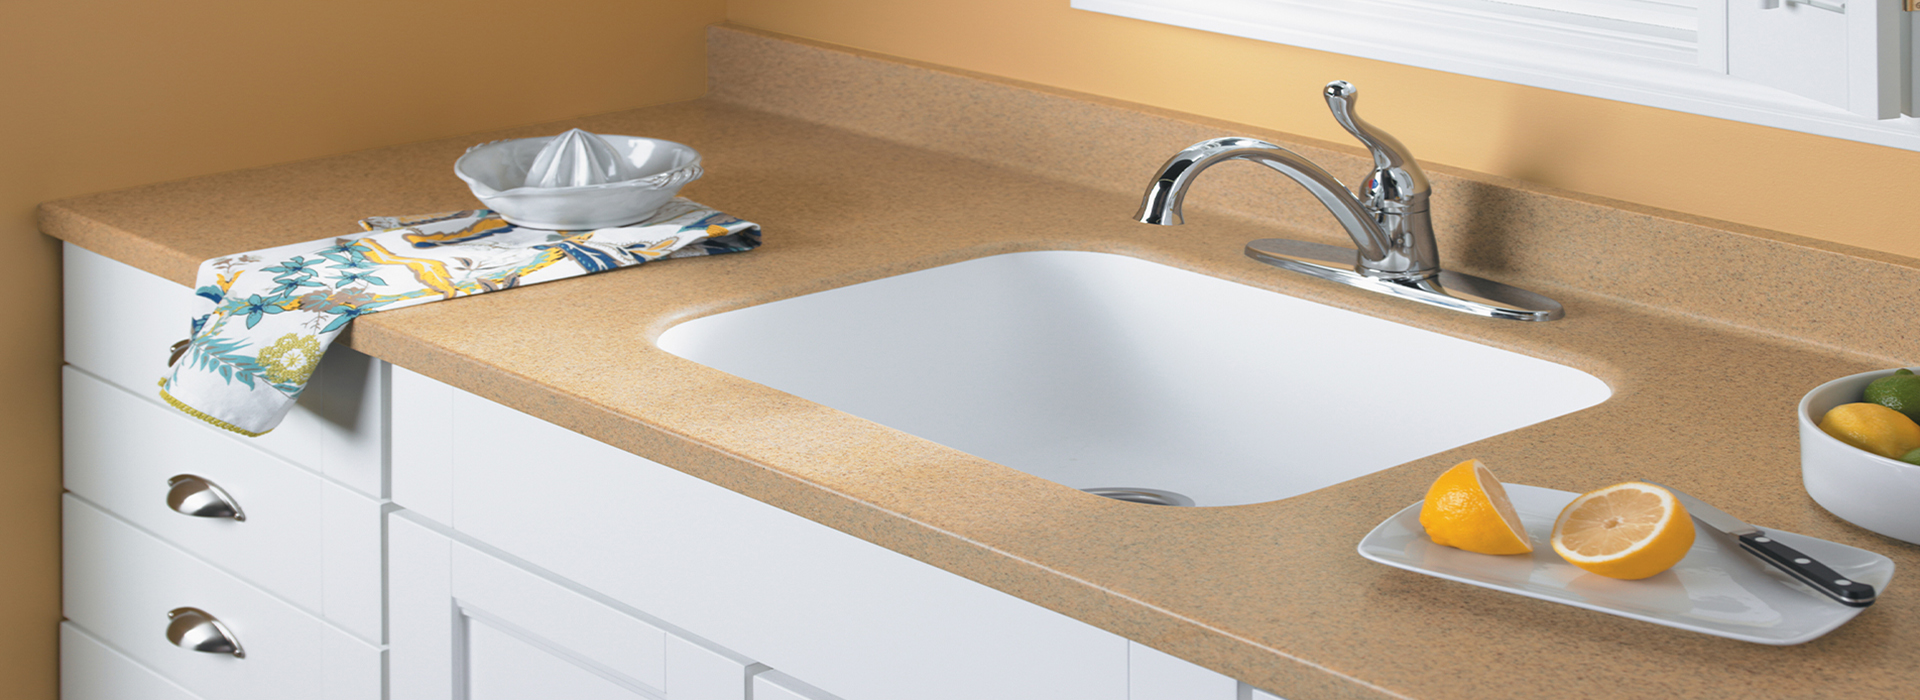 Cleaning Formica Countertops Formica Solid Surfacing Sinks